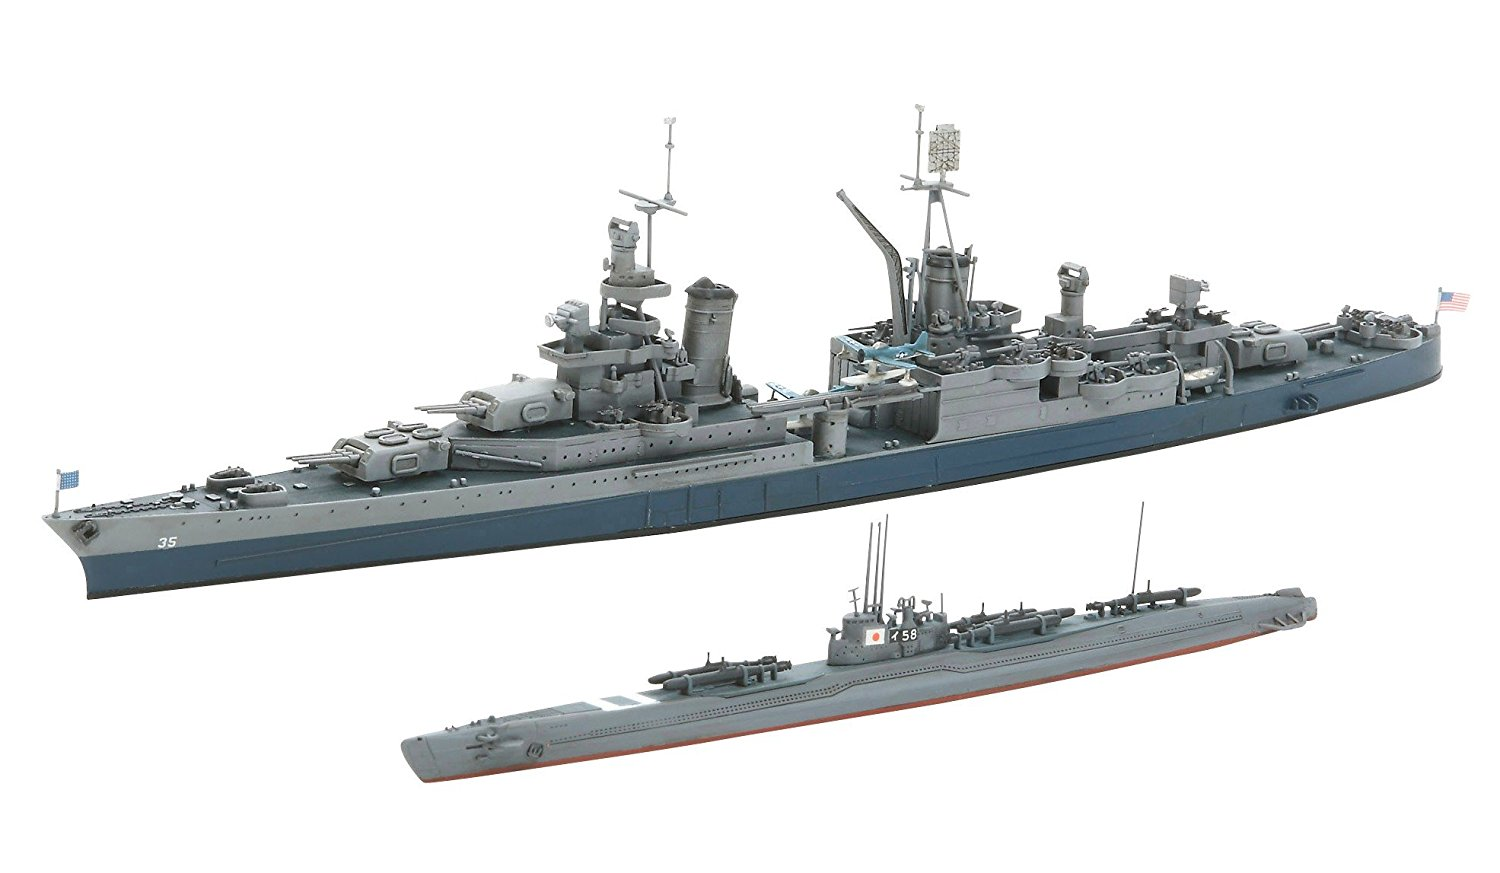 The constructed kit. The details of the models are very good. Tamiya is always high quality manufacturer for 1/700 scale models